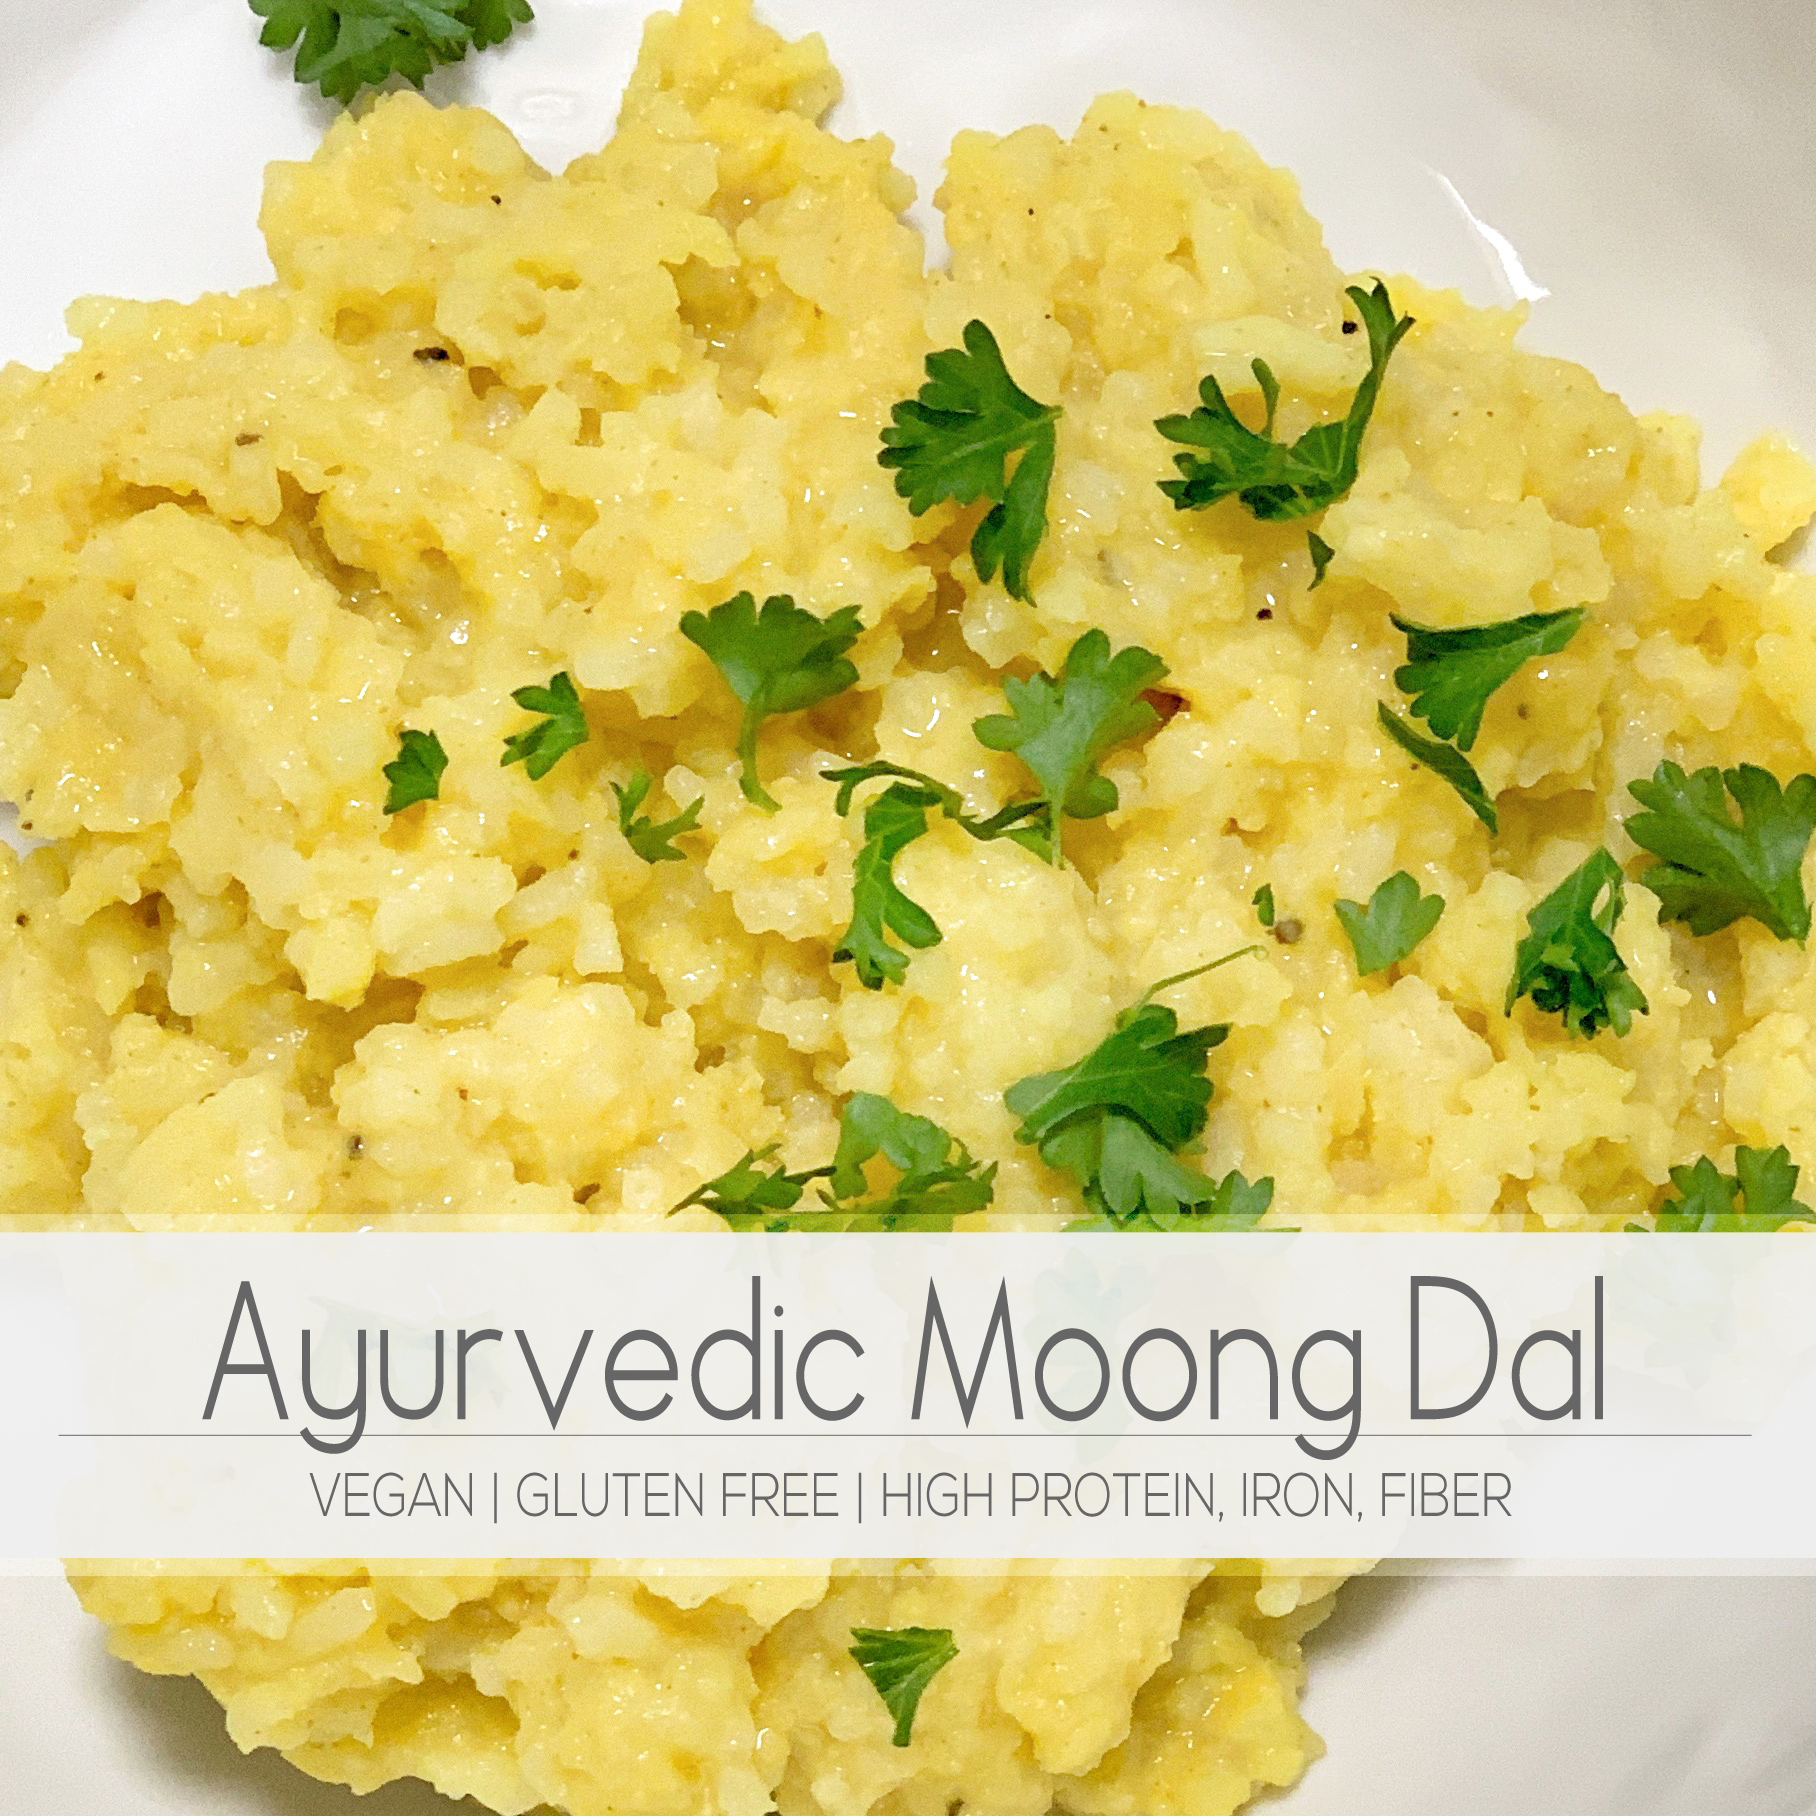 Vegan and gluten free moong dal and rice kitchari recipe. Perfect healing ayurvedic meal. | For Animals For Earth